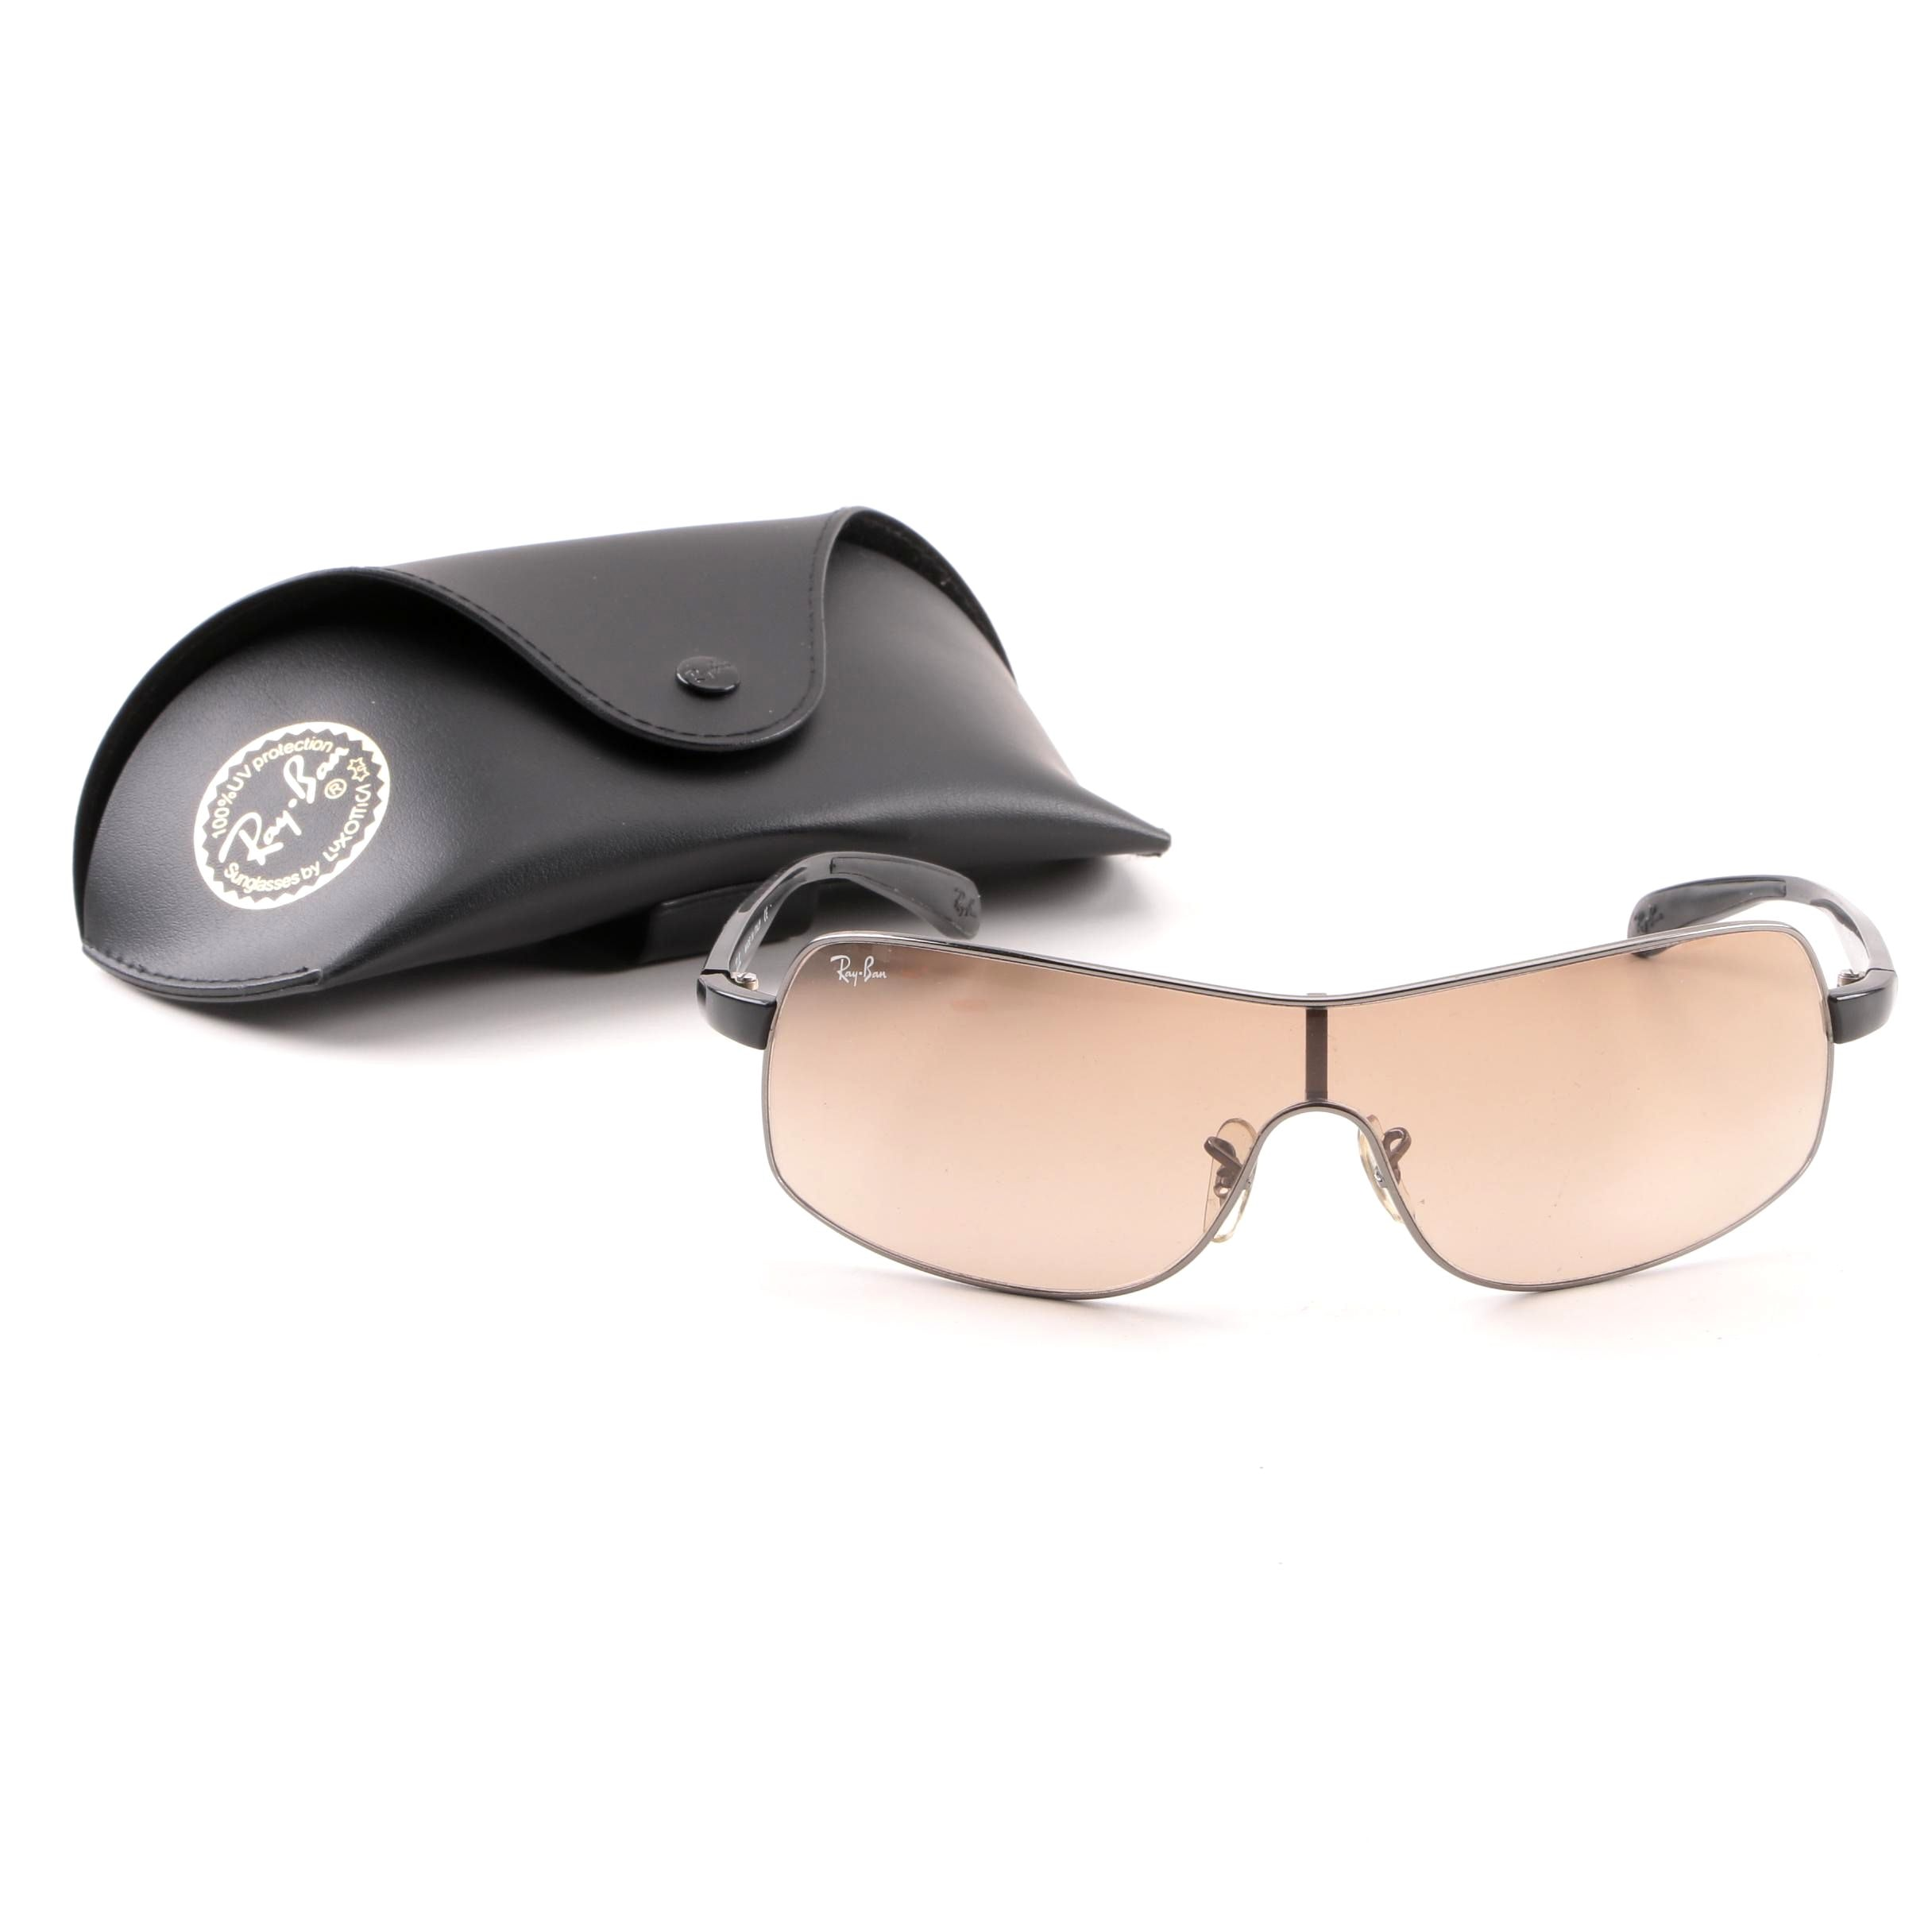 Ray-Ban 3244 Shield Style Sunglasses with Case